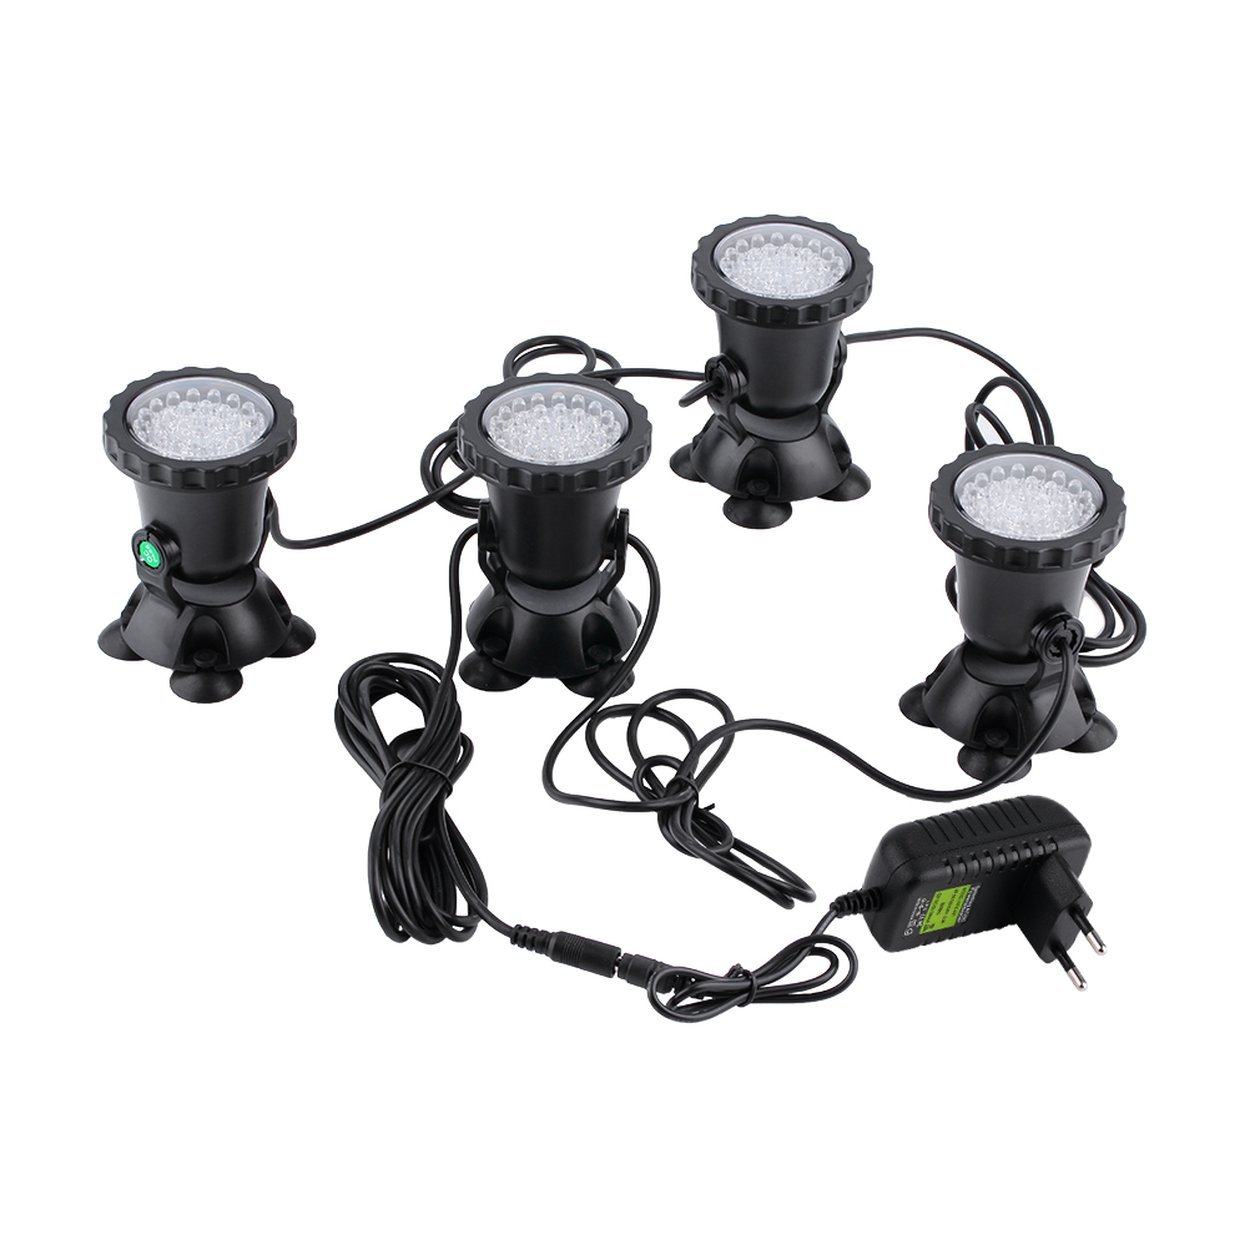 Heraihe Submersible 4pcs étanche étanche sous-Marine Aquarium étang de Jardin Fontaine Fish Tank Piscine Couverte Etang 36LED Spot Light